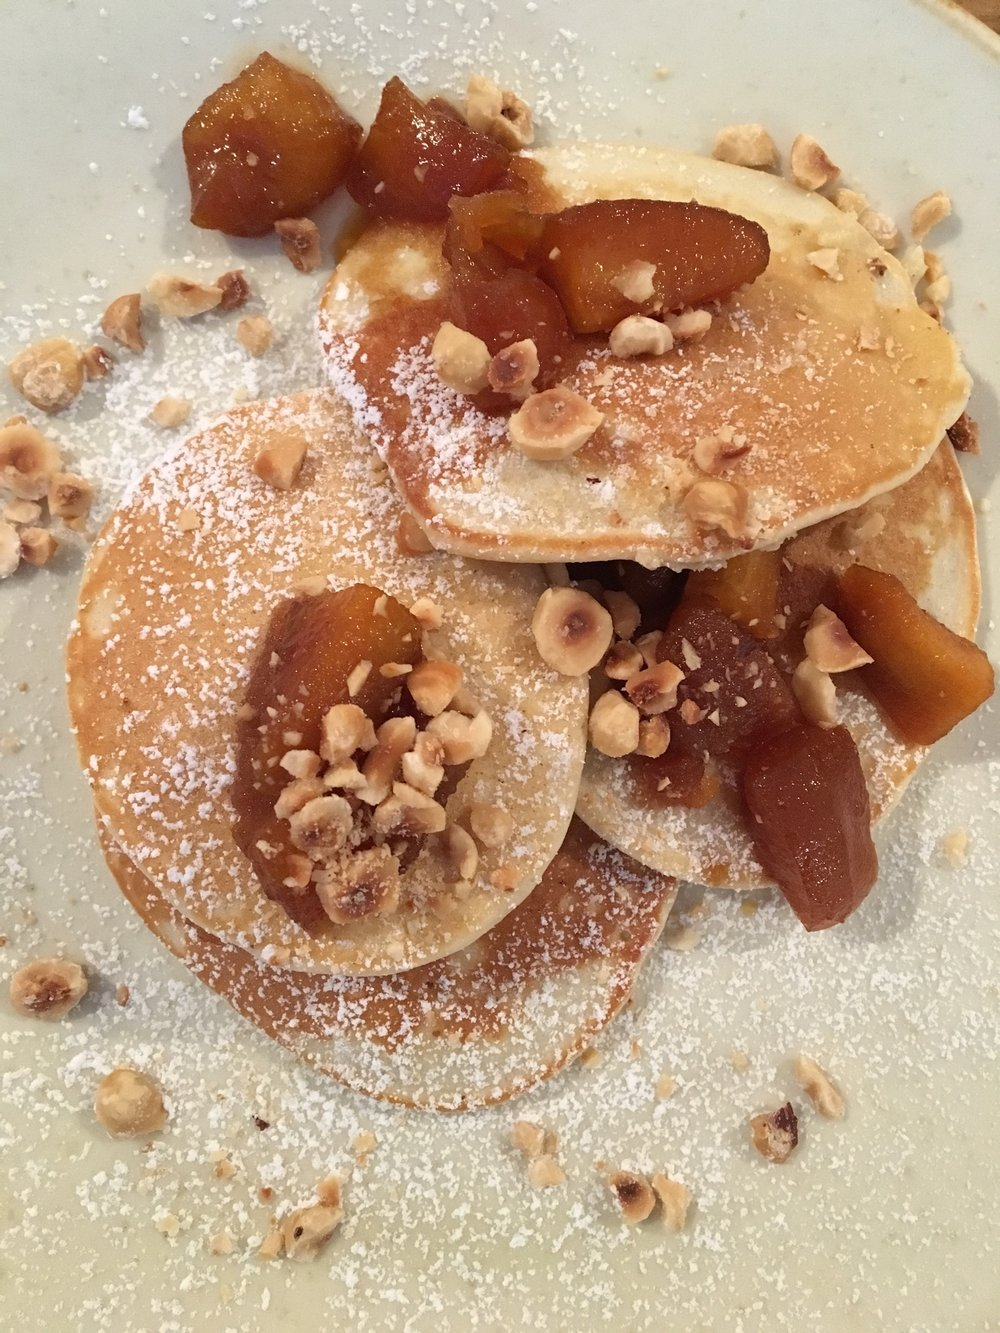 Pancakes with caramel apples & hazelnuts